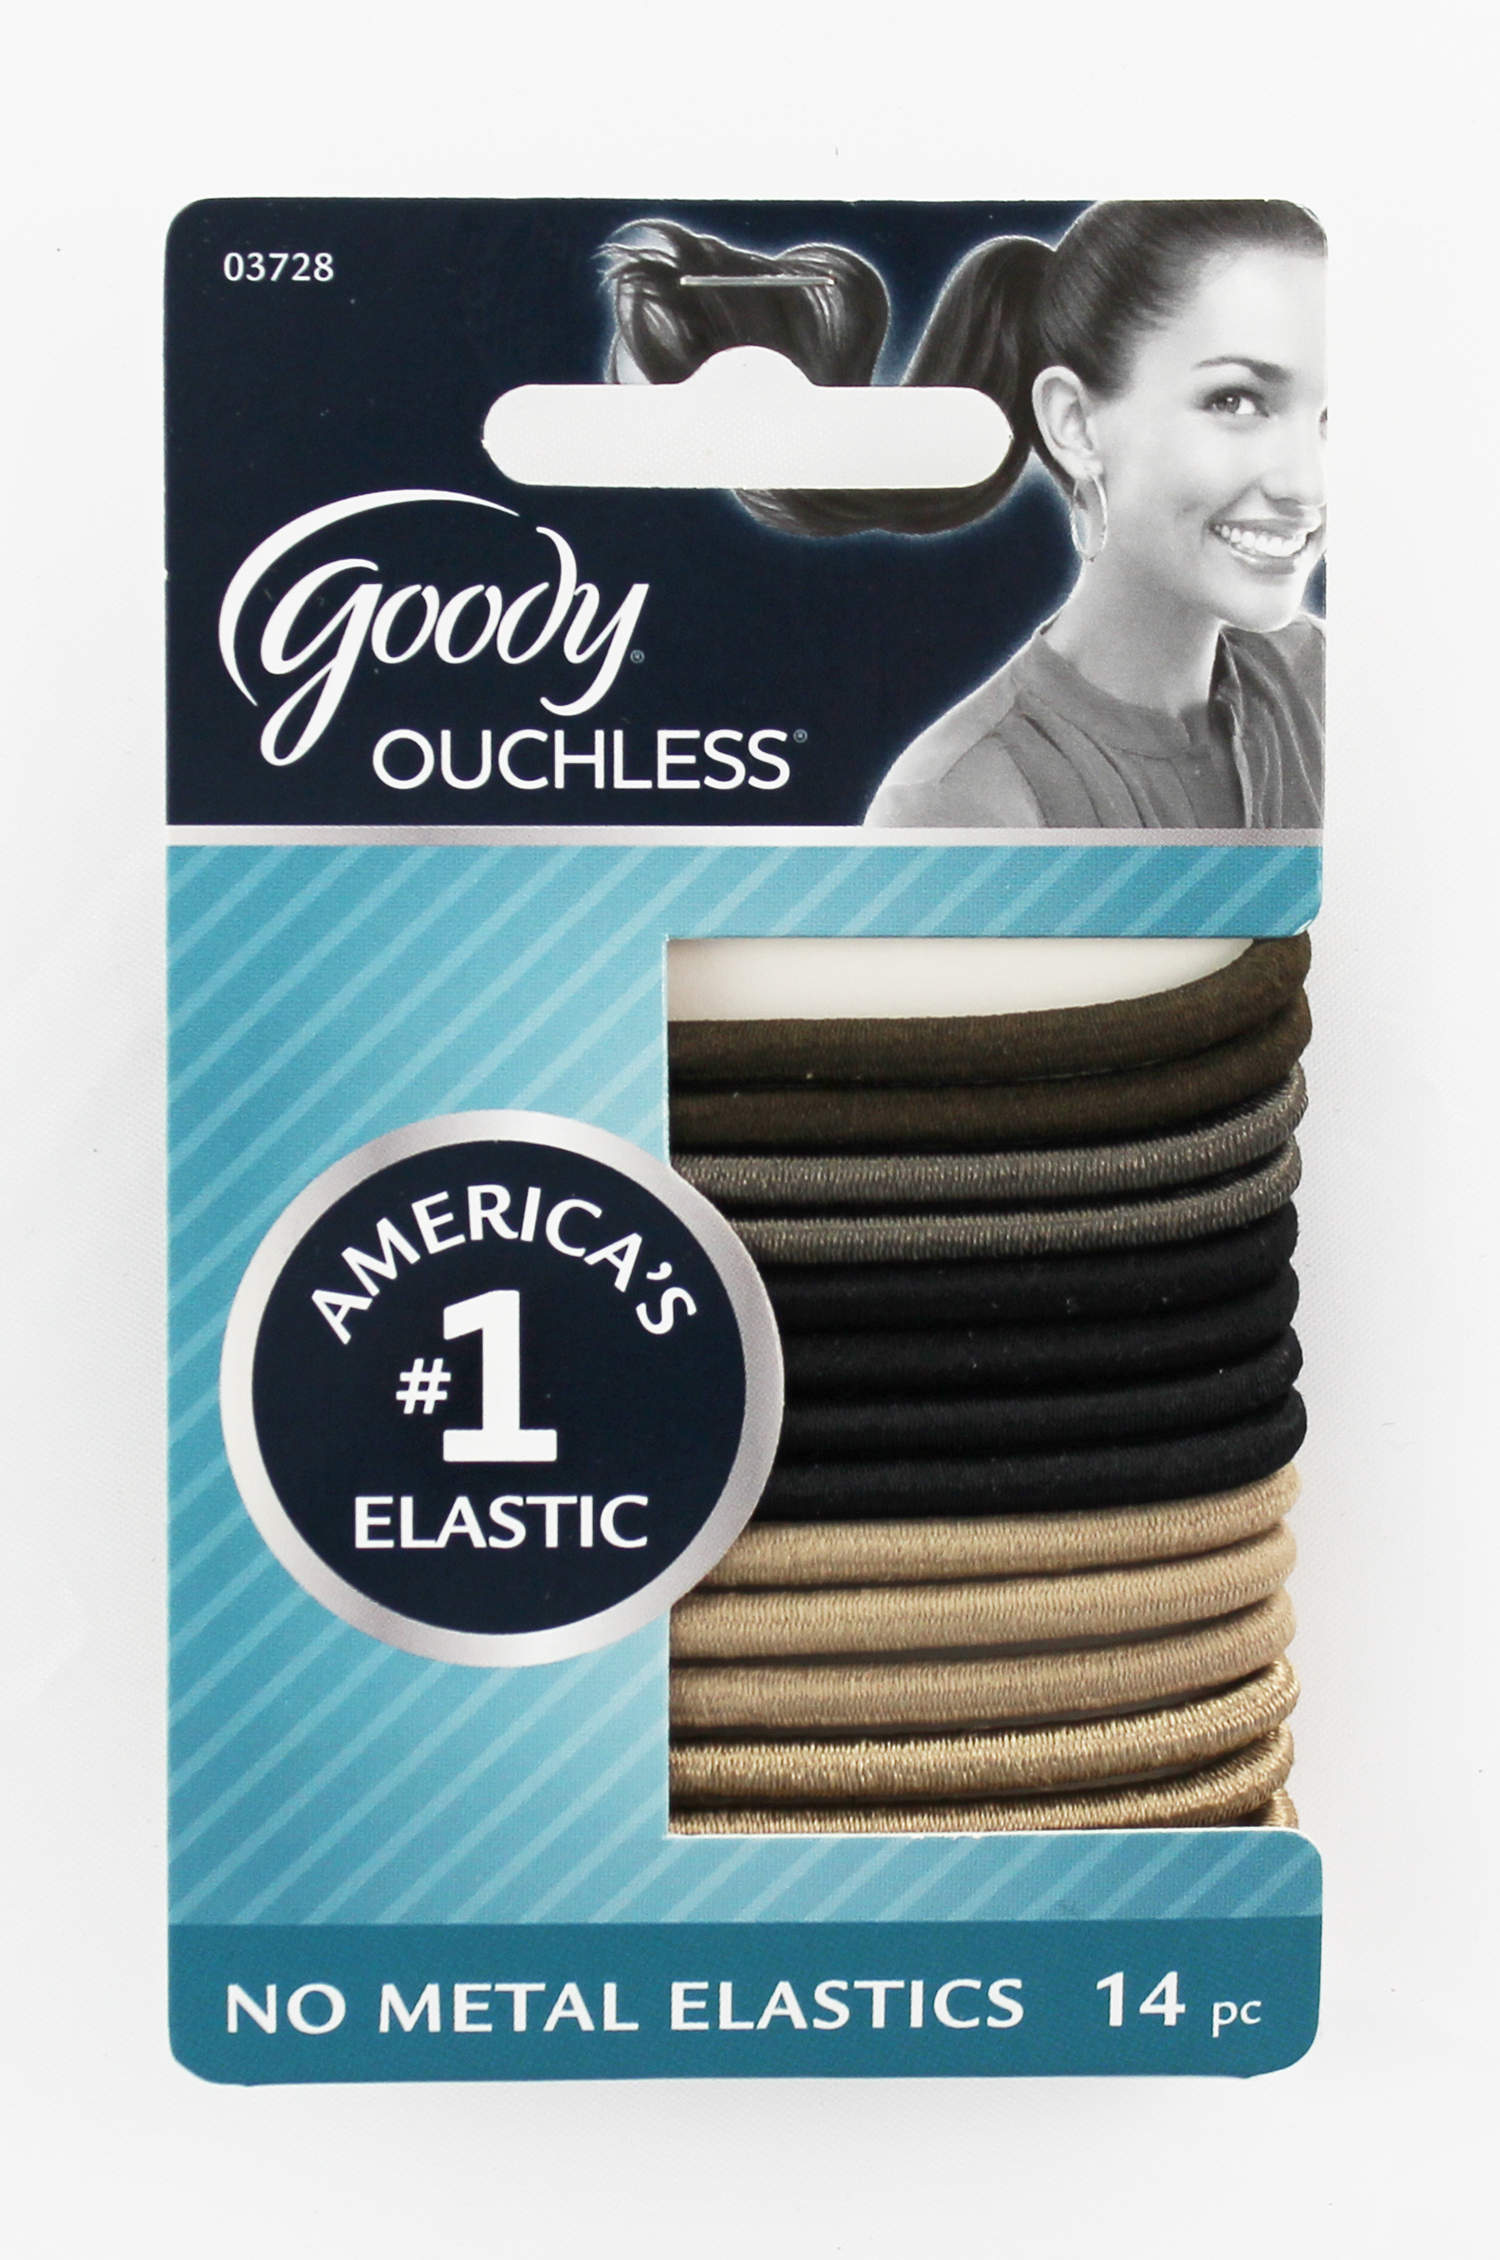 Goody Ouchless Starry Nights Gentle Elastics 14 Count